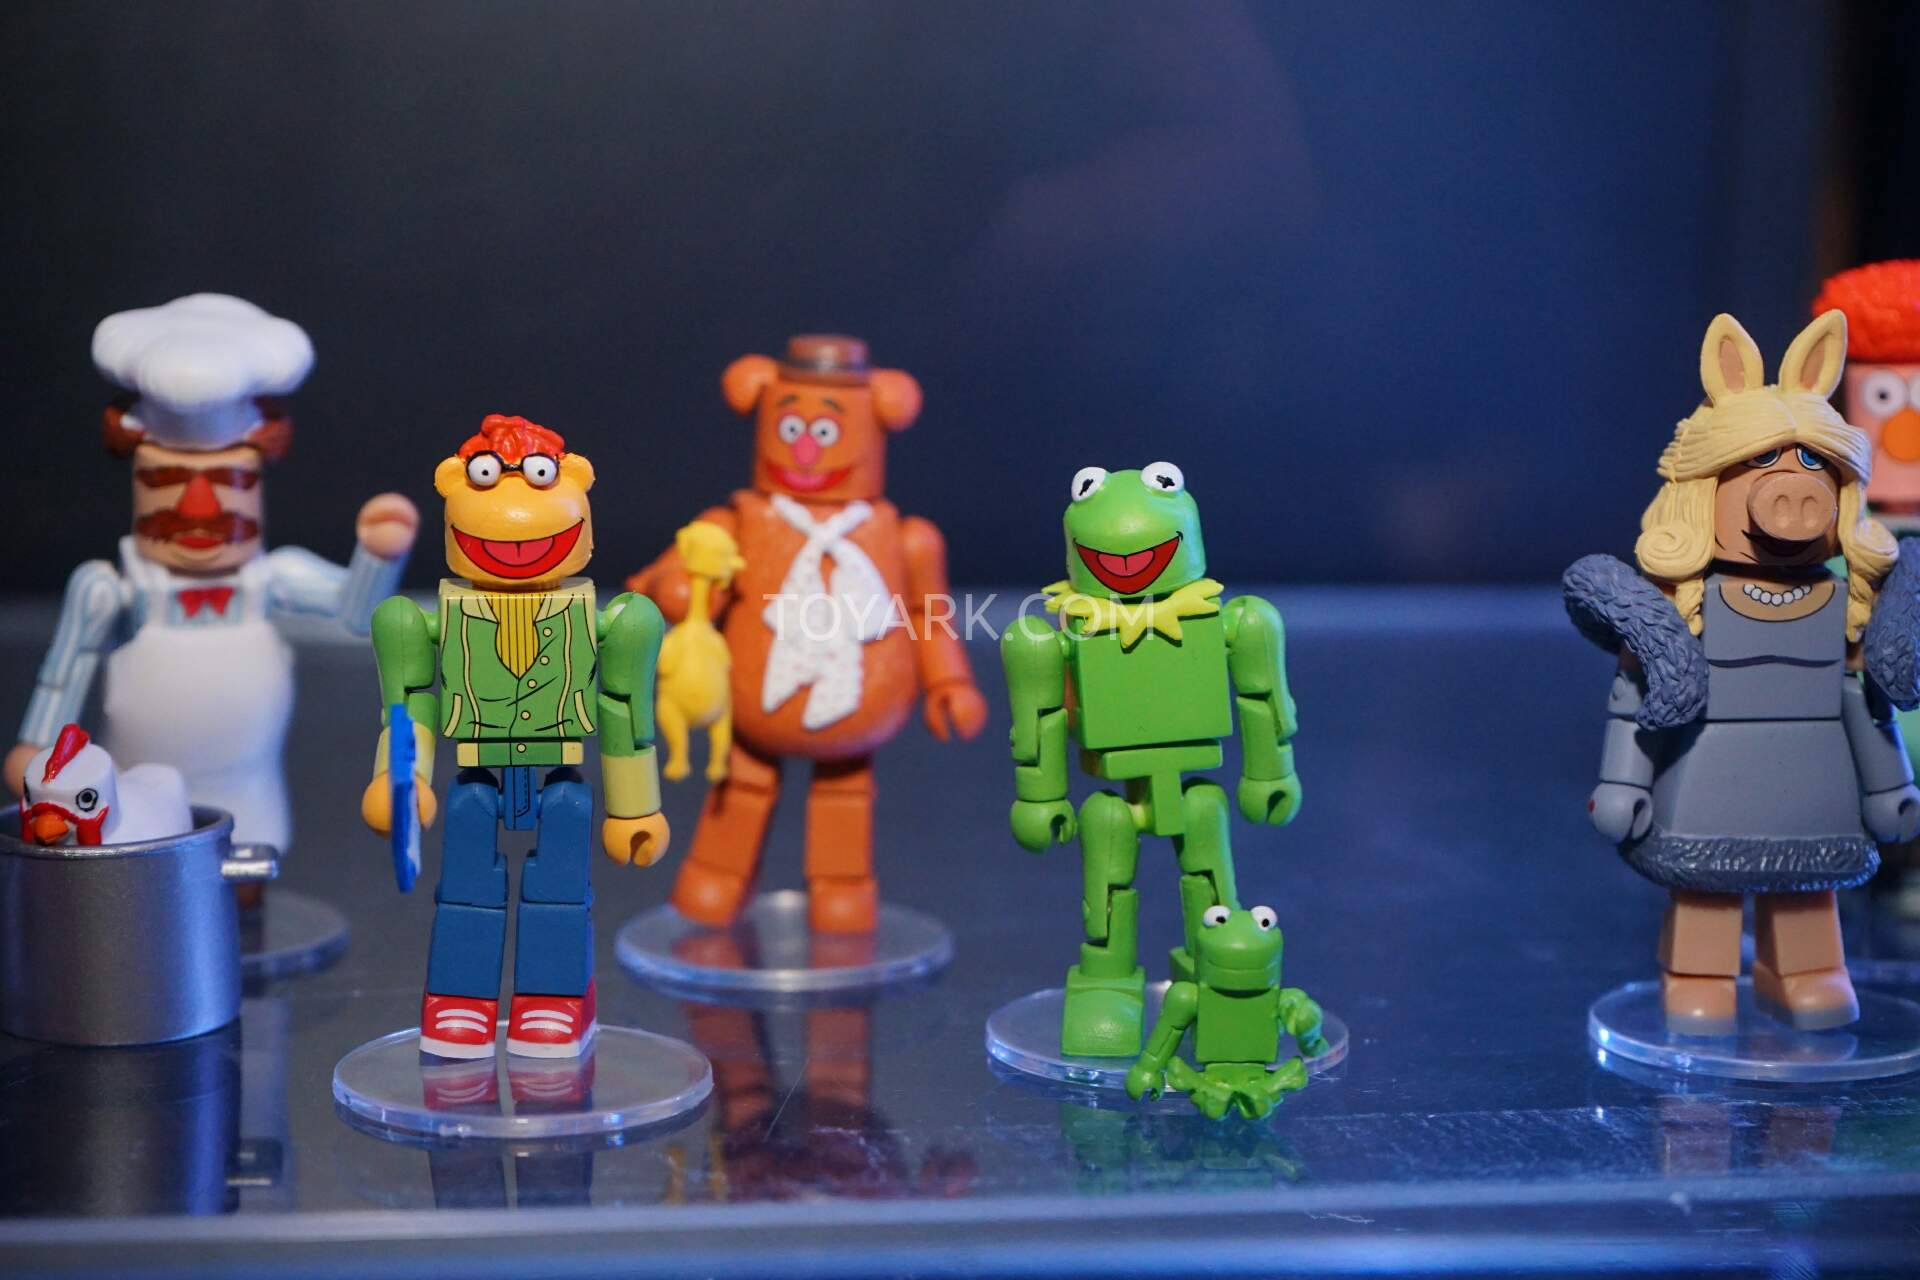 NYCC 2015 - Diamond Select Toys View Askew and Muppets - The